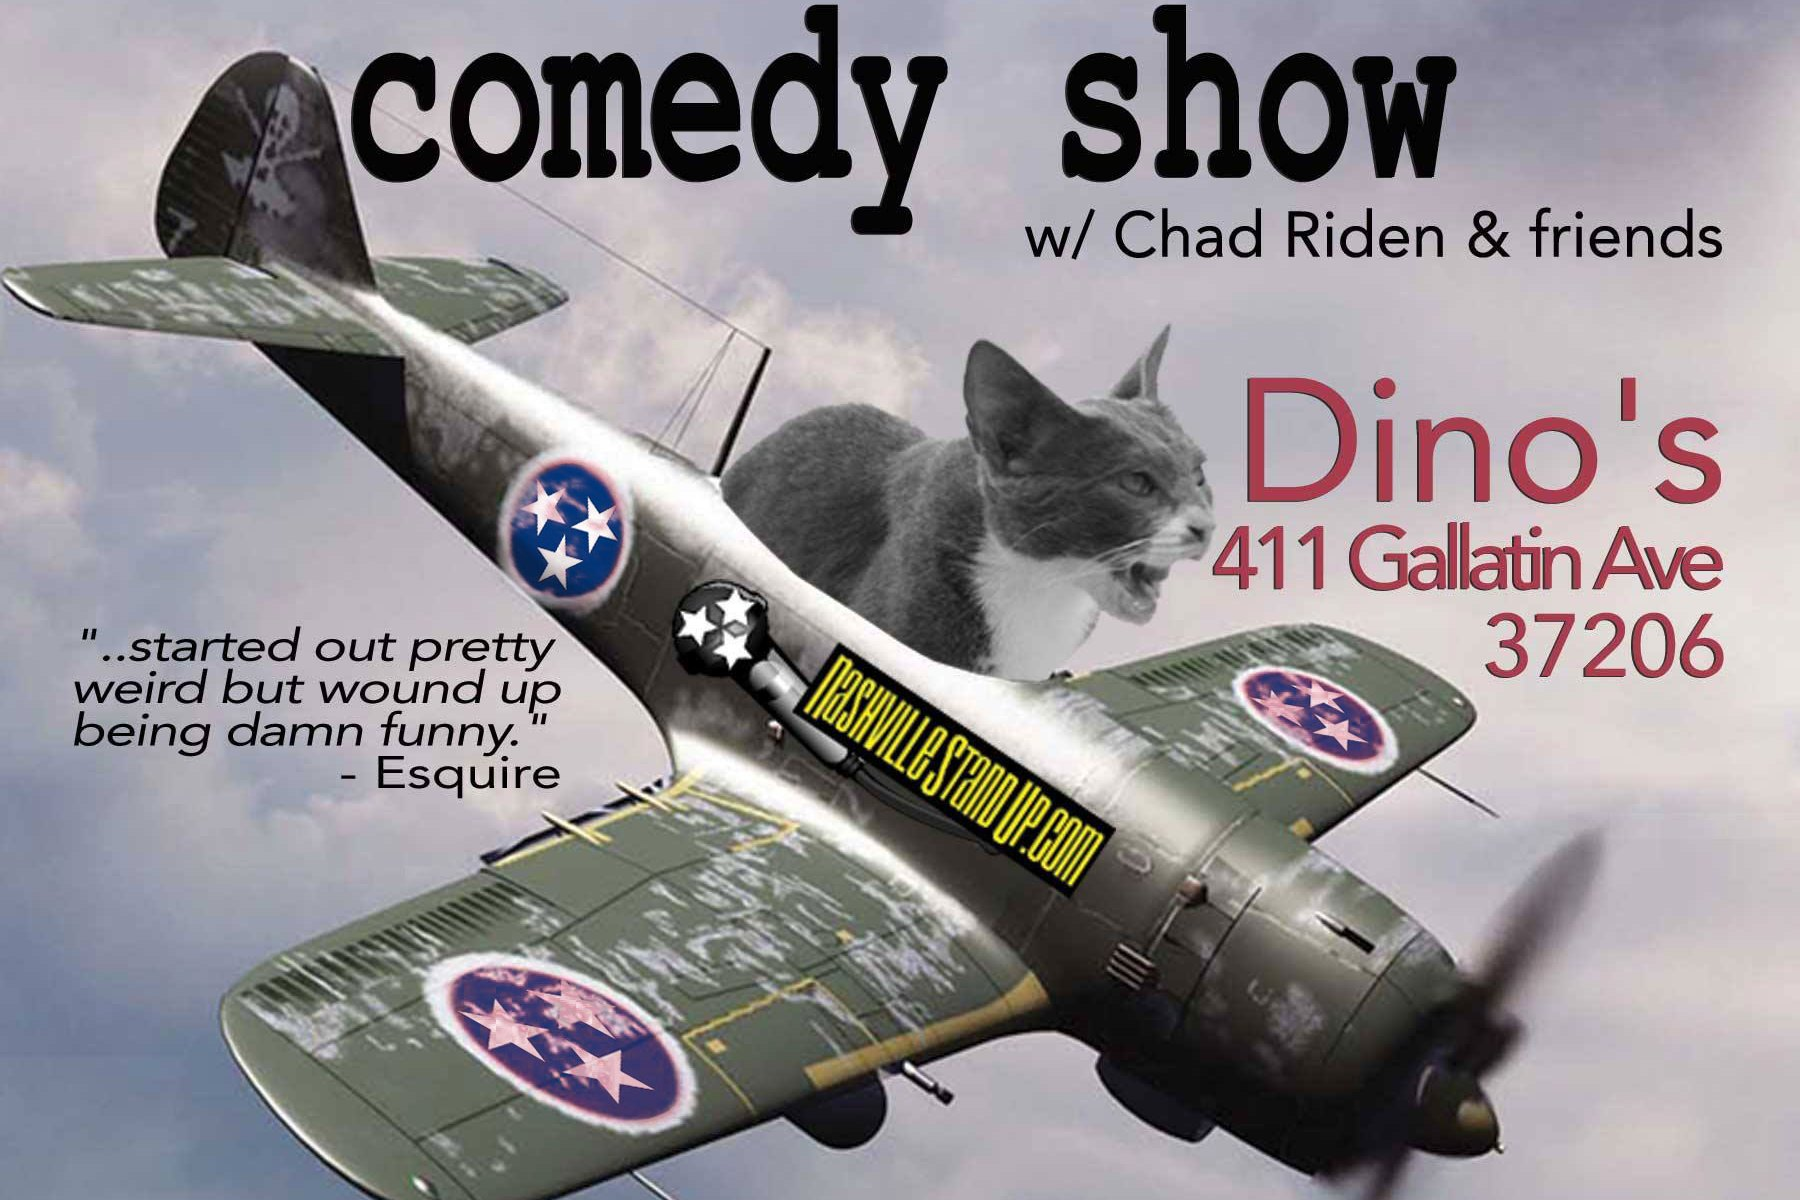 KAMIKAZE KITTEN comedy show w/ Chad Riden & friends - 2nd Wed every month at Dino's in East Nashville. FREE!